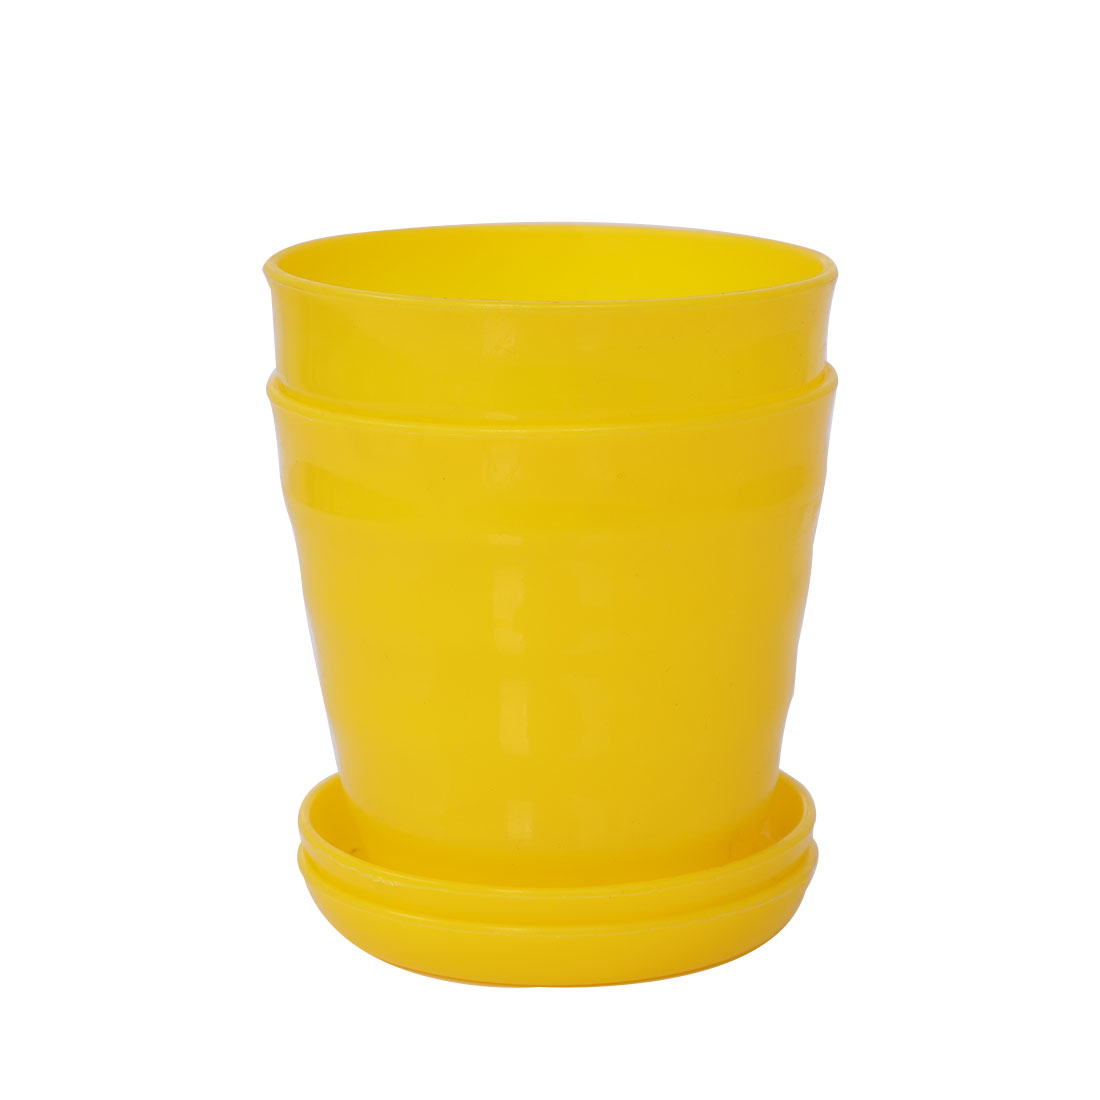 Apartment Desktop Plastic Round Cactus Plant Flower Seed Pot Tray Holder Yellow 2pcs